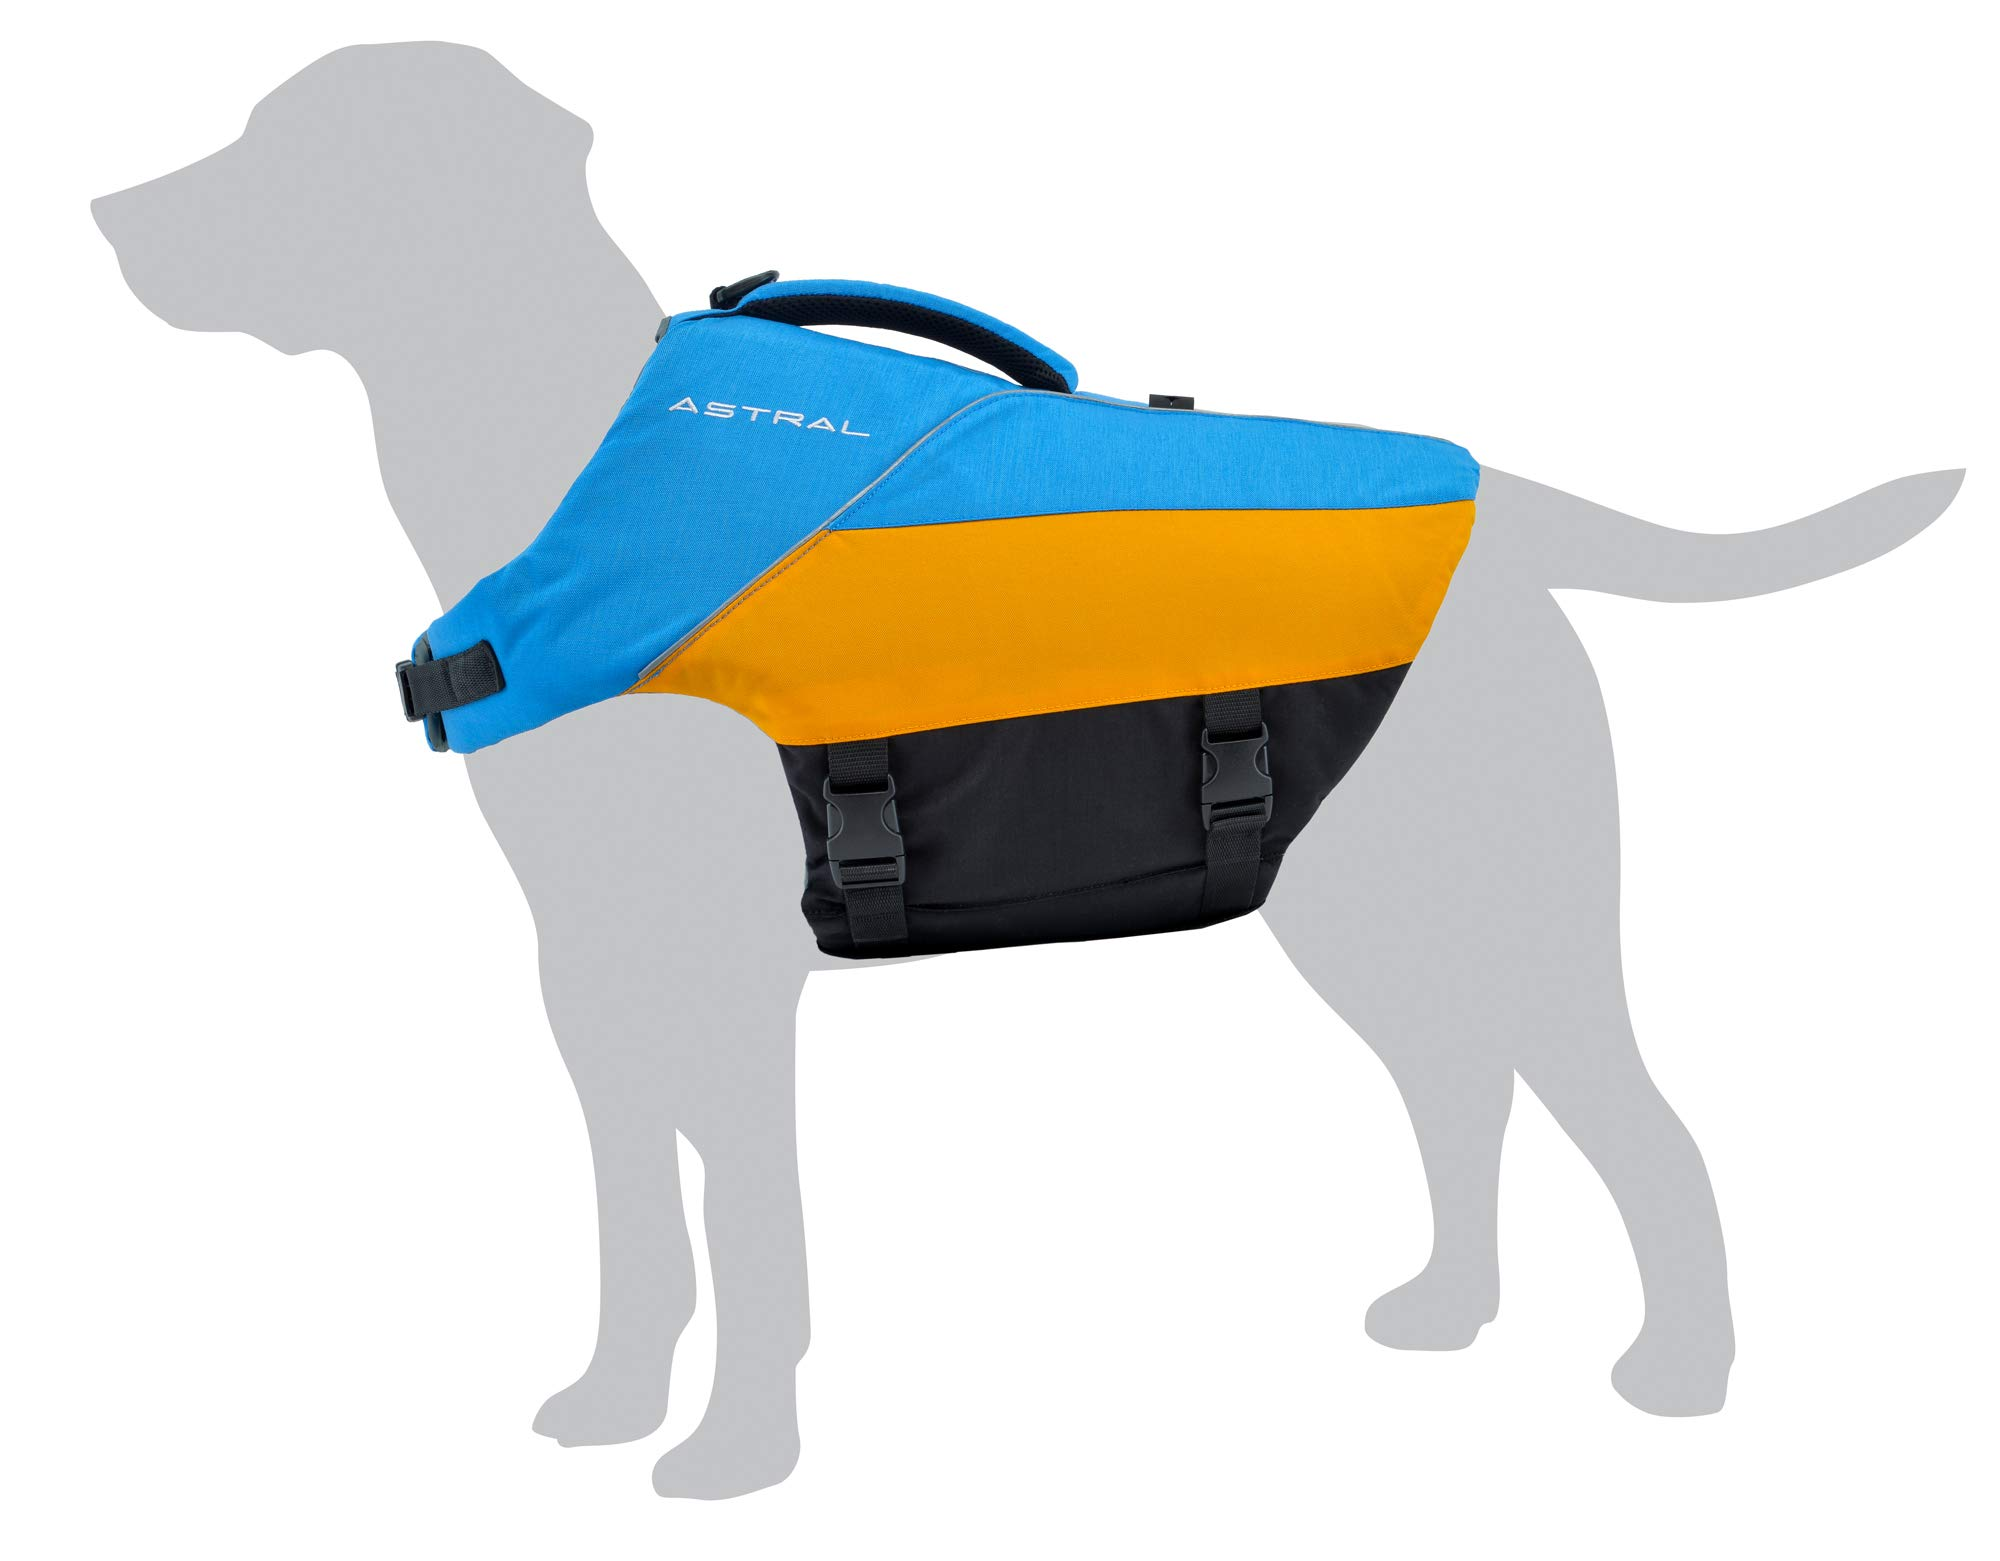 Astral BirdDog Dog Life Jacket PFD for Swimming and Water Play, Ol' Blue, Medium by Astral